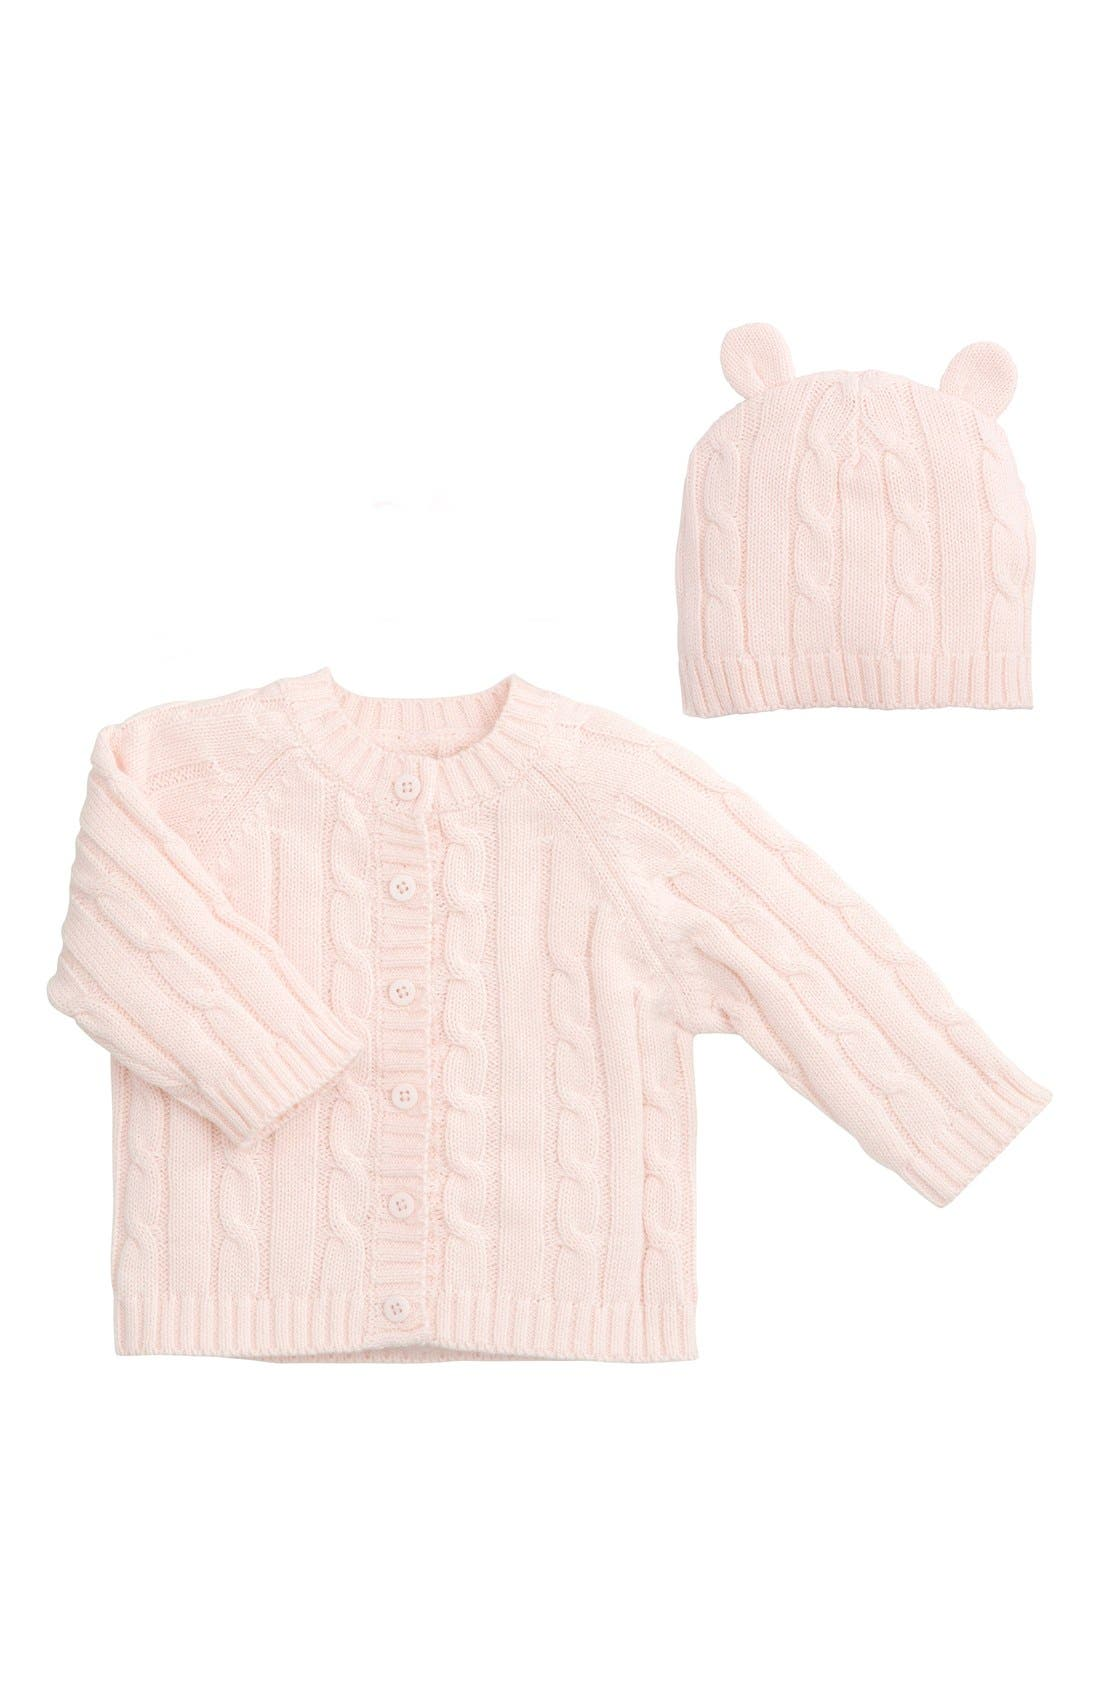 Alternate Image 1 Selected - Elegant Baby Cable Knit Sweater & Hat Set (Baby)